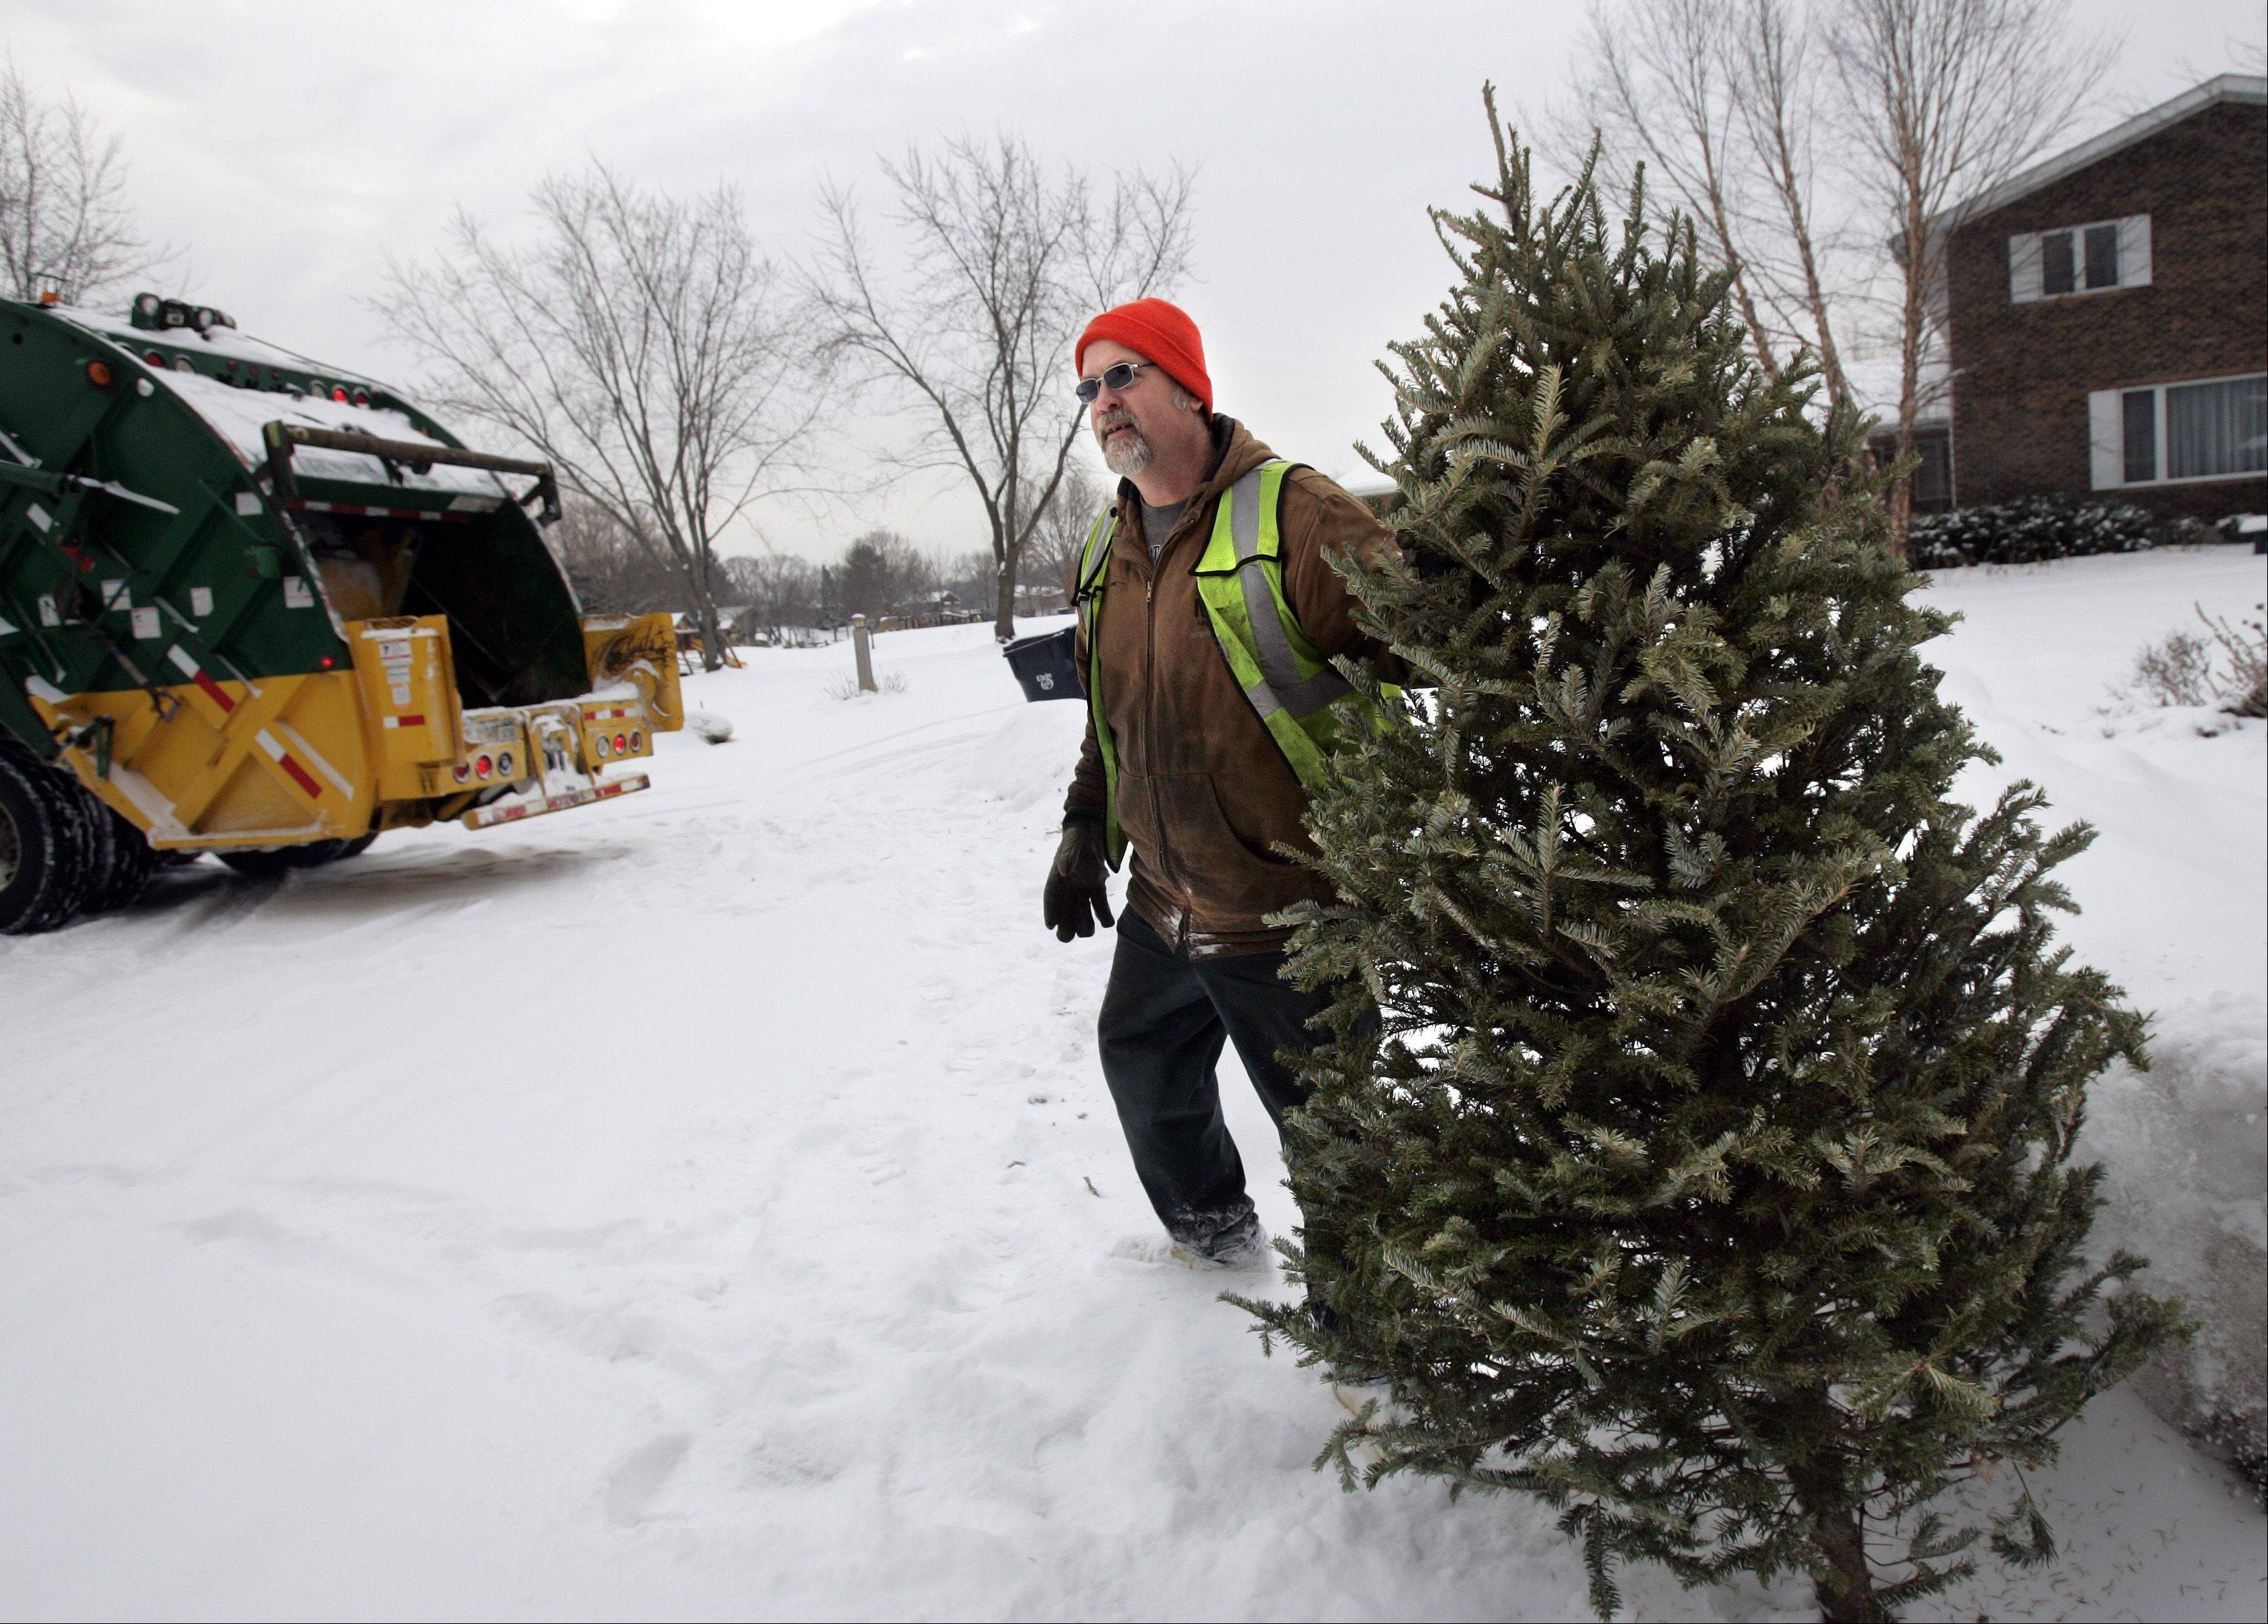 BRIAN HILL/bhill@dailyherald.com, 2009Most towns in Kane County offer free Christmas tree recycling in early January.